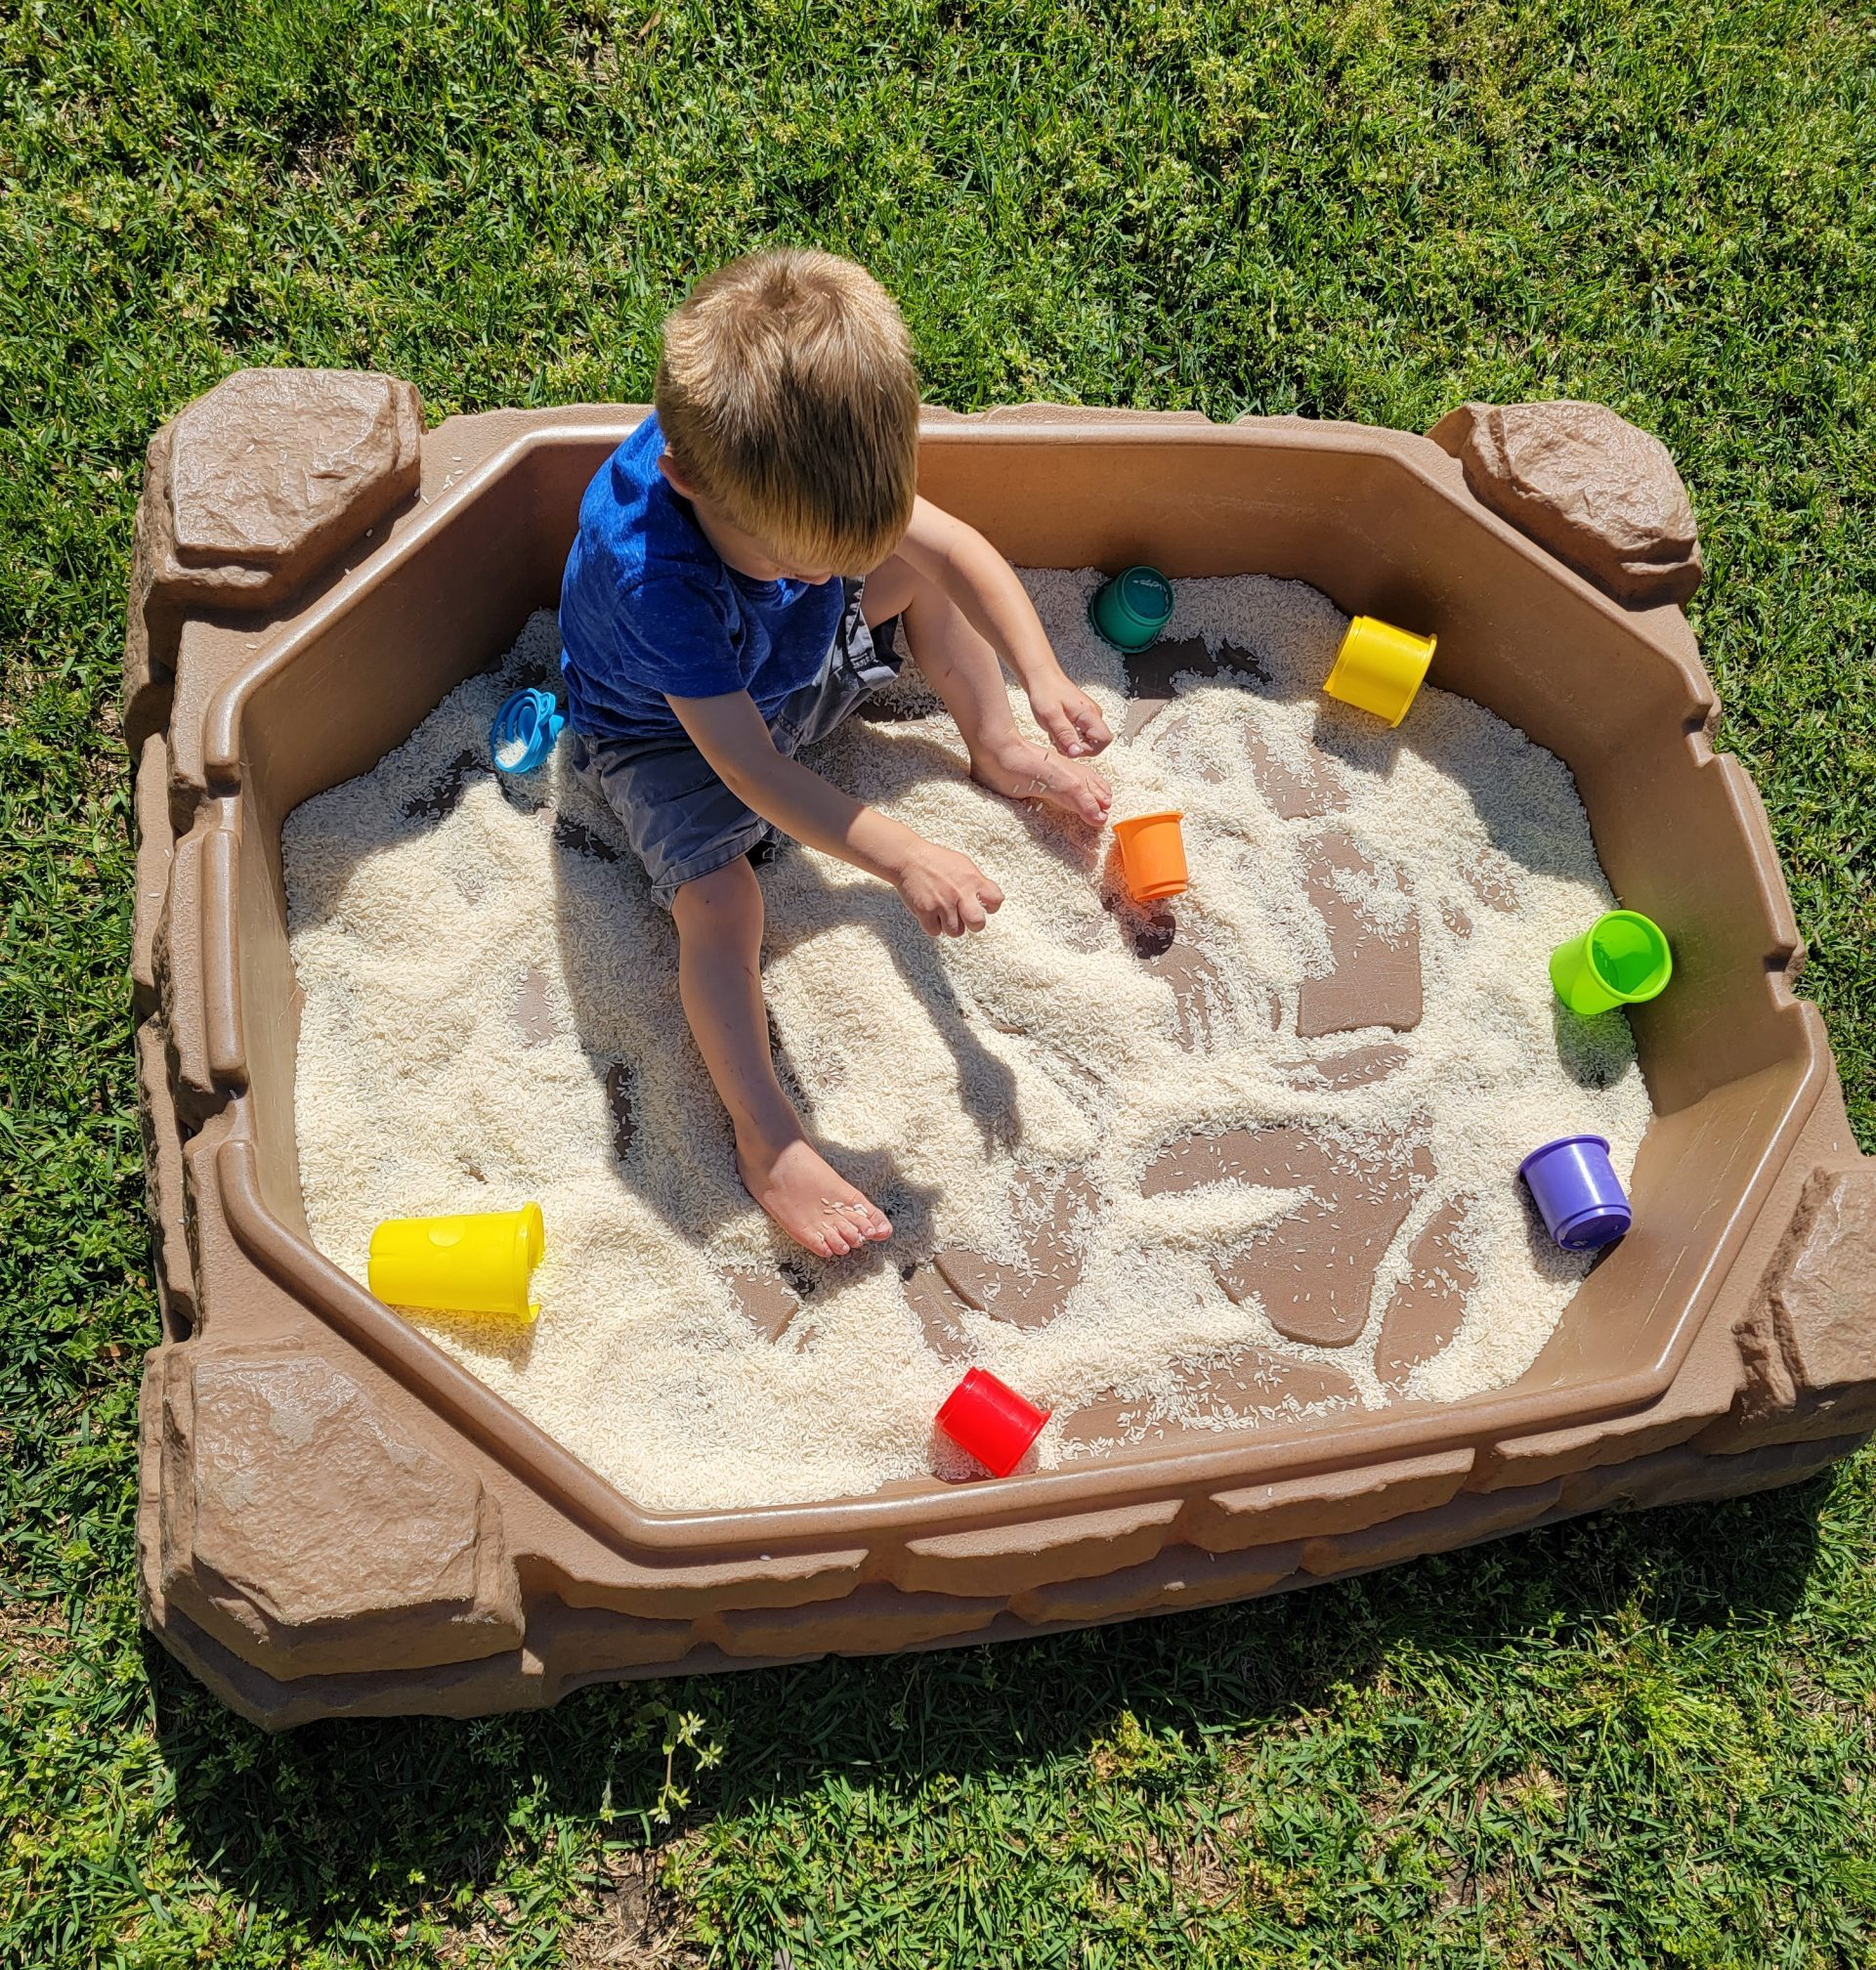 Little boy sitting in sand box playing with rice and colorful cups